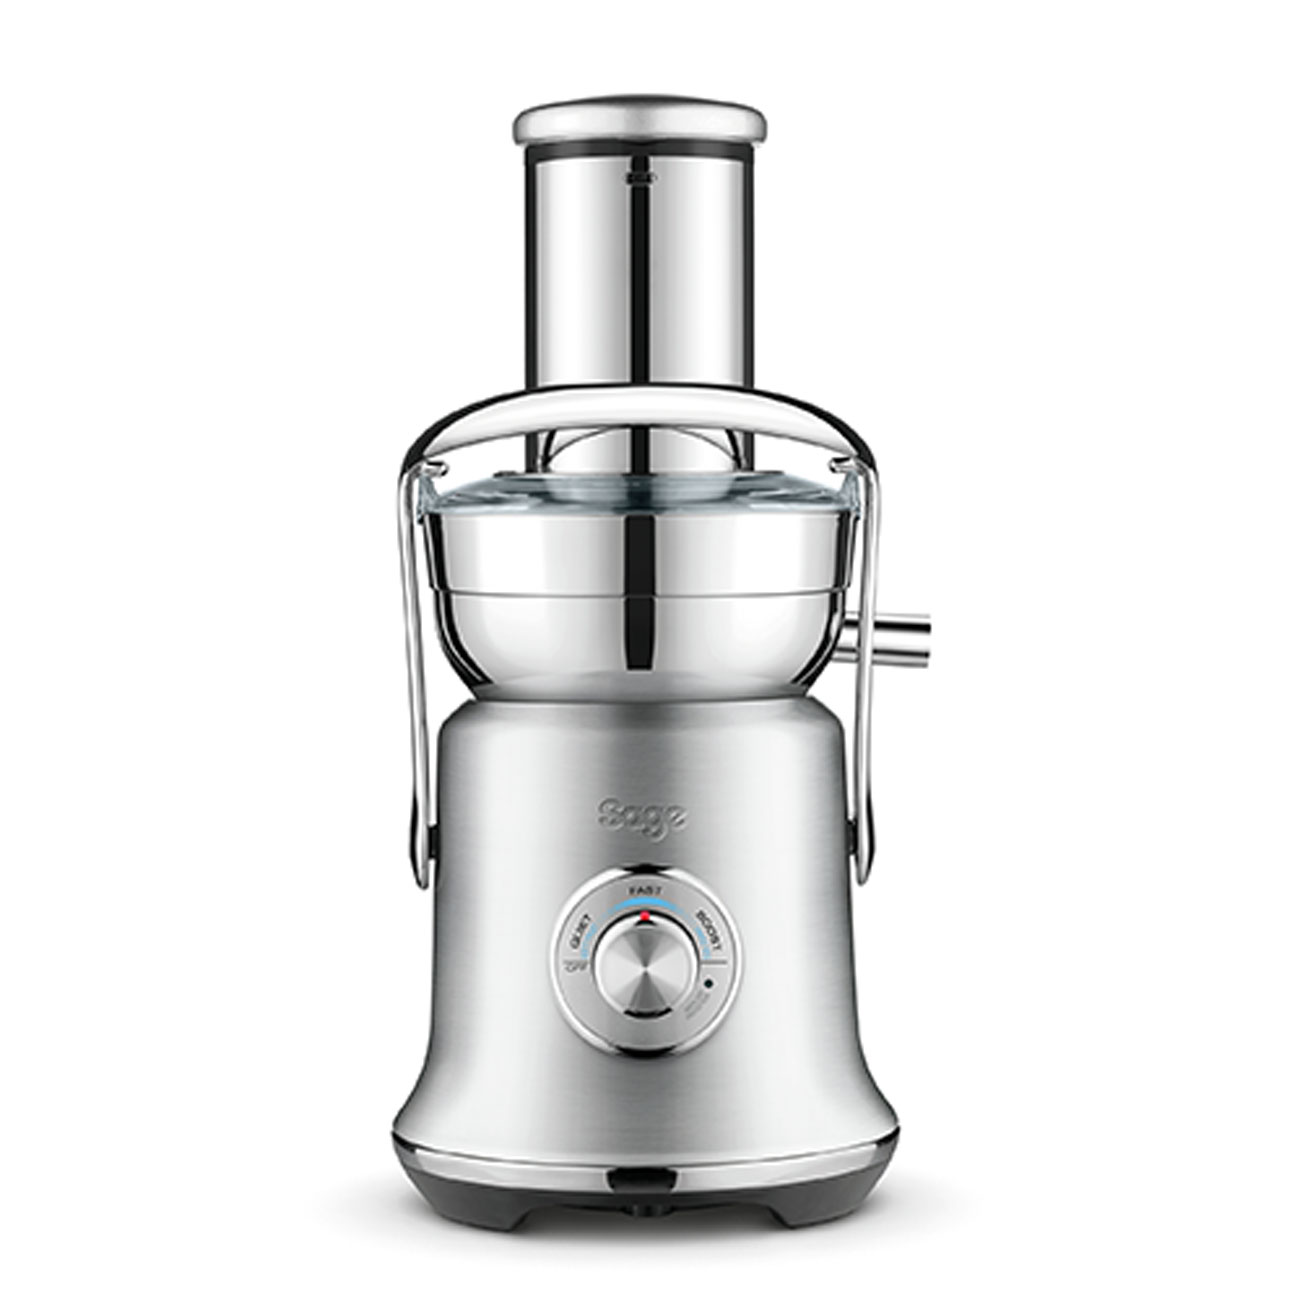 The Nutri Juicer Cold Xl